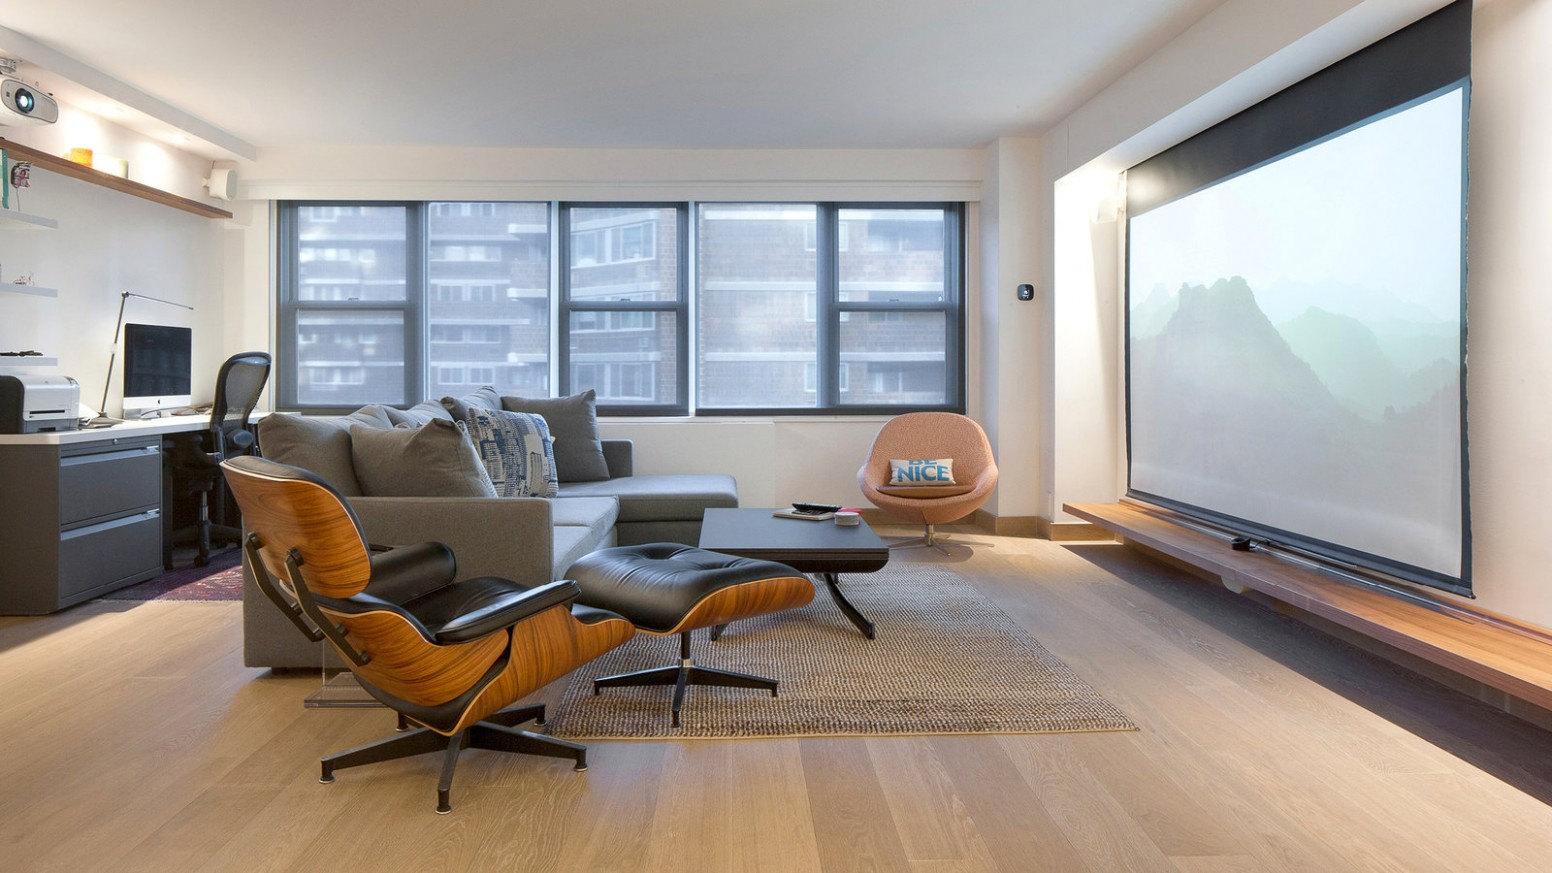 10 Square Feet, and Not an Inch Wasted - The New York Times - Apartment Design For 800 Sq Ft